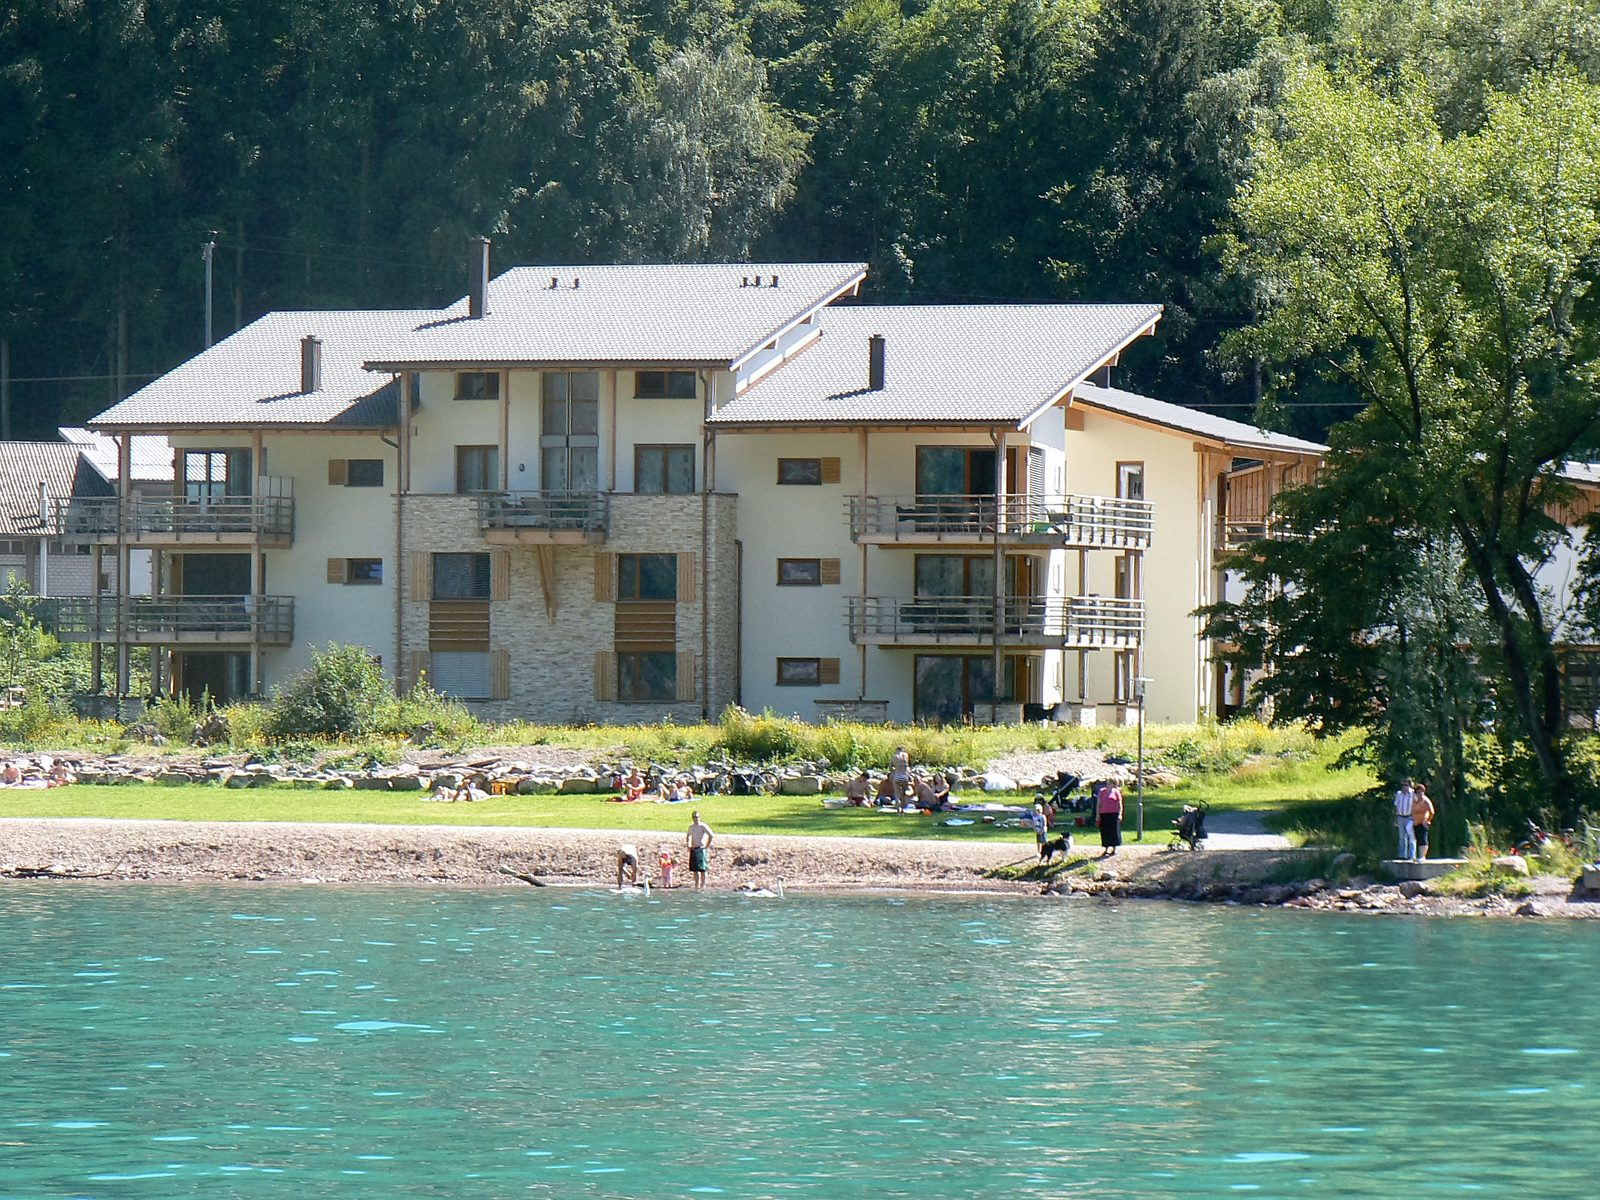 Resort Walensee in Switzerland summer and sun holiday to the Alps